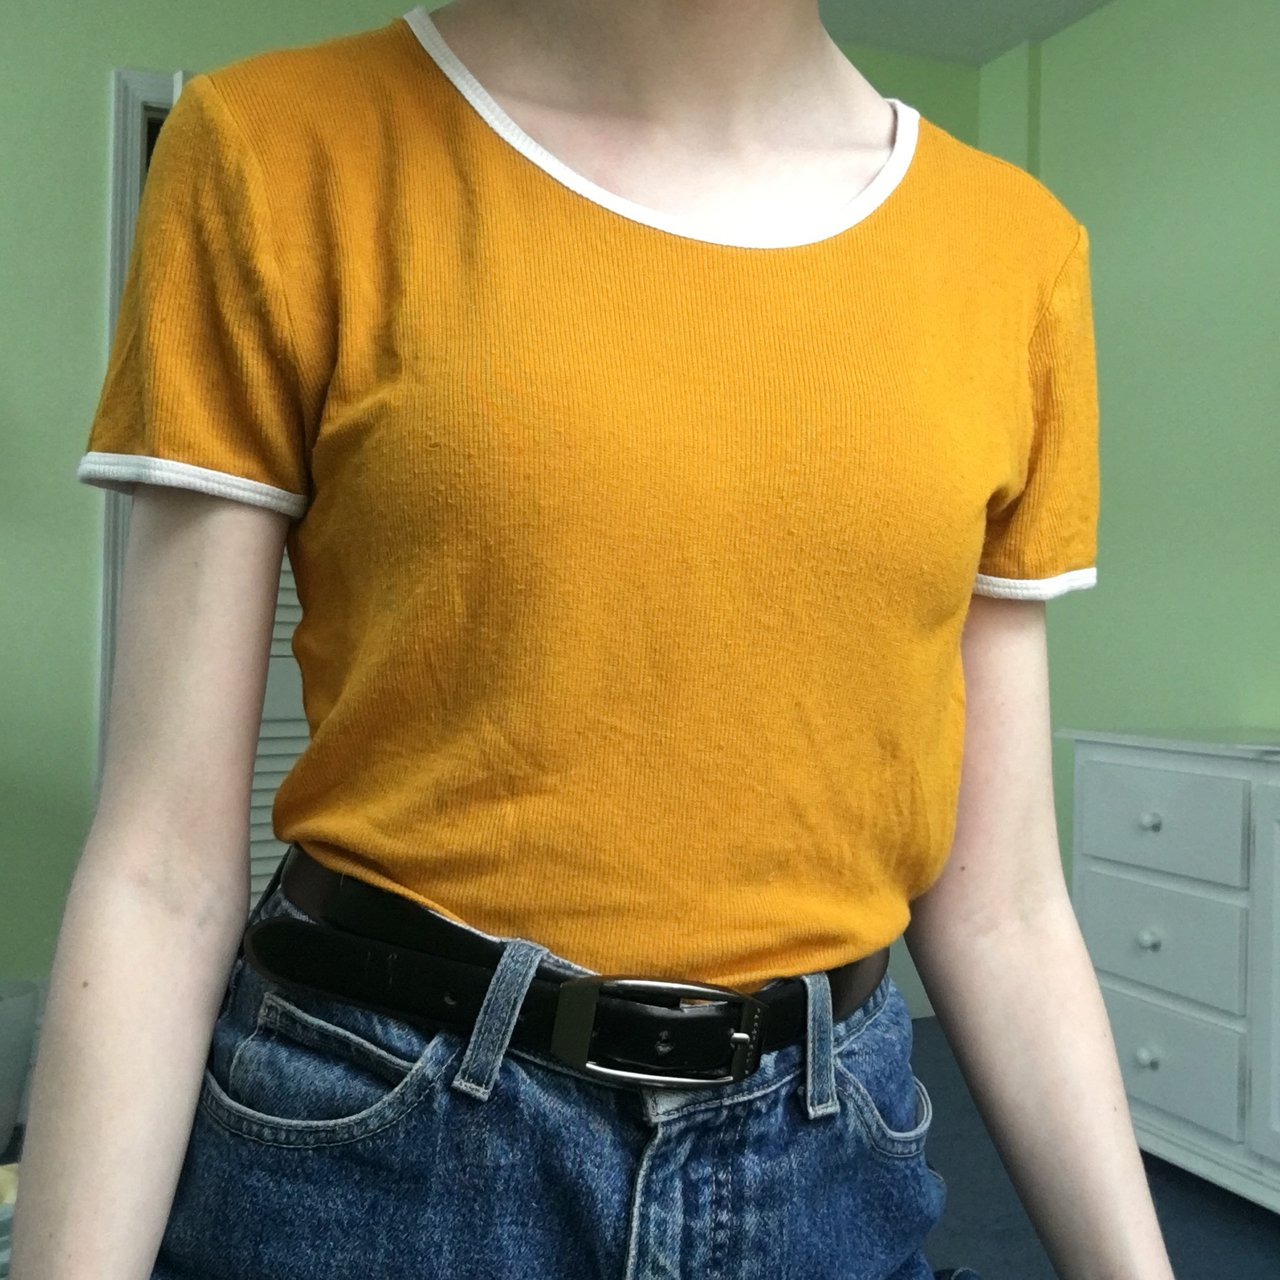 d2a1368c65 mustard yellow and white ringer tee -tag has been cut but - Depop